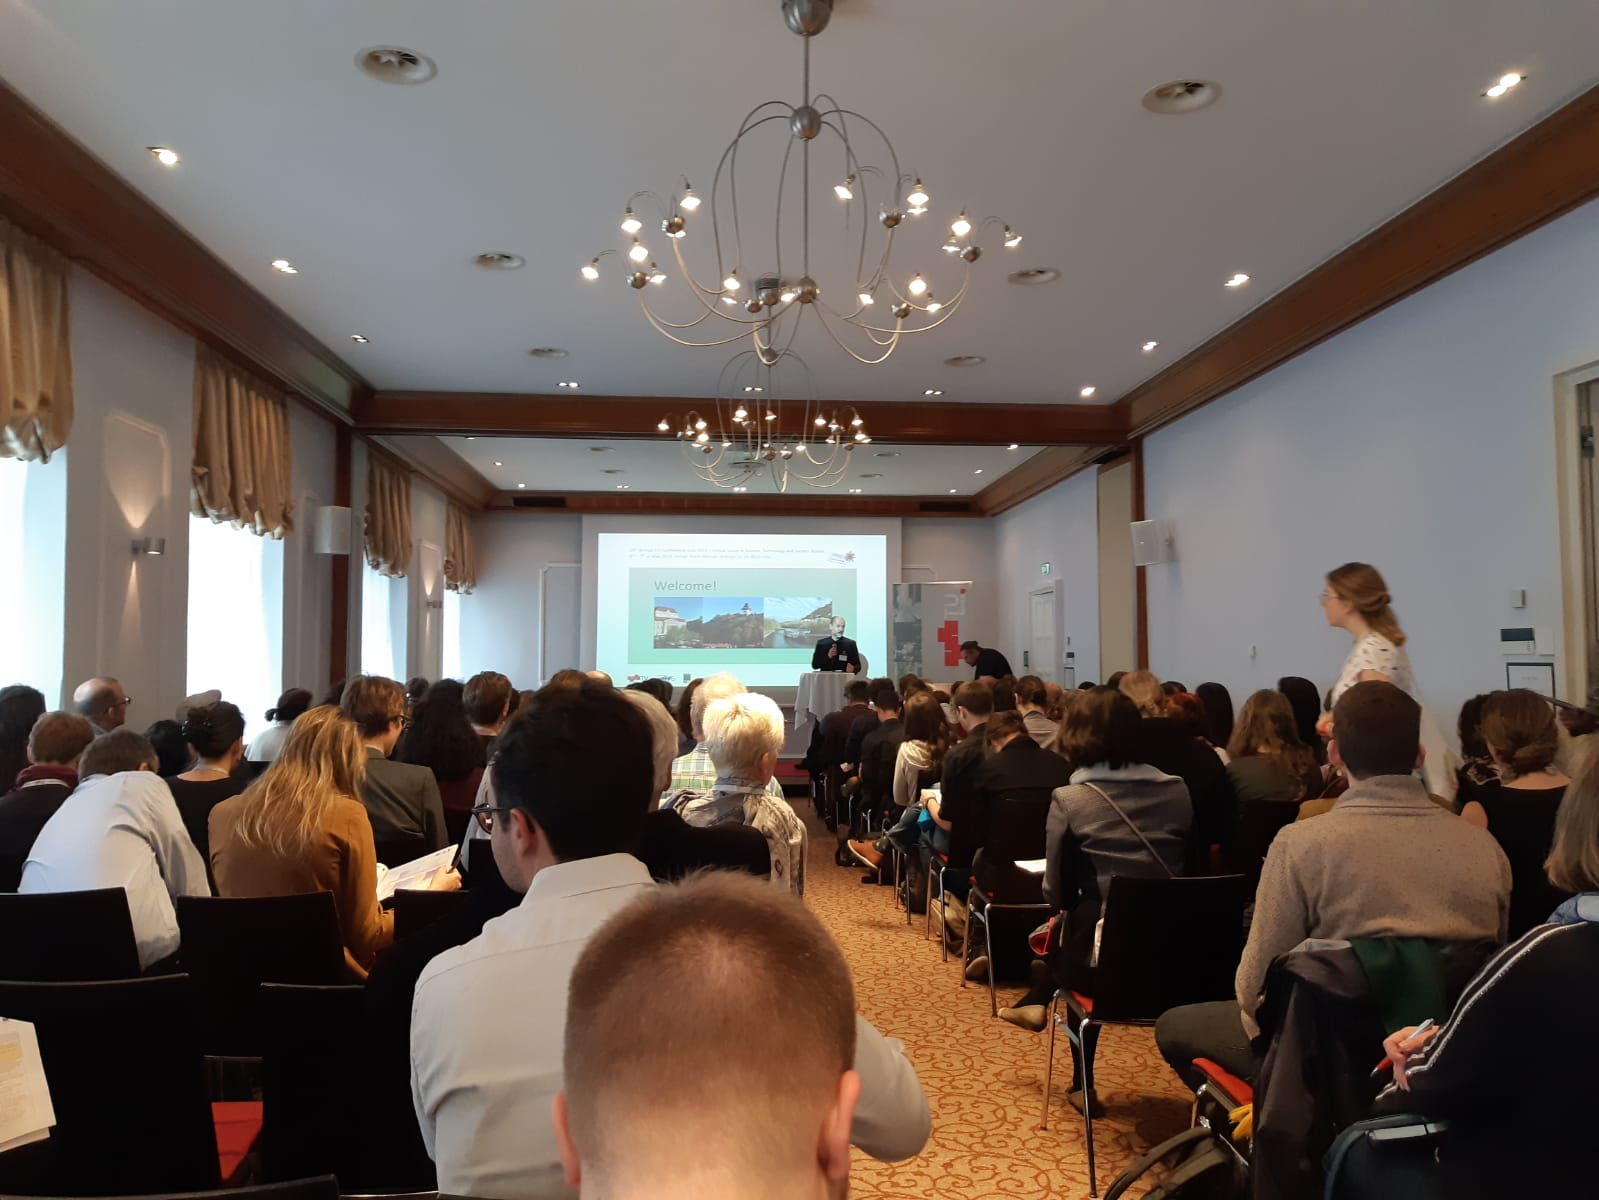 CLIC at the 18th Annual STS Conference Graz 2019